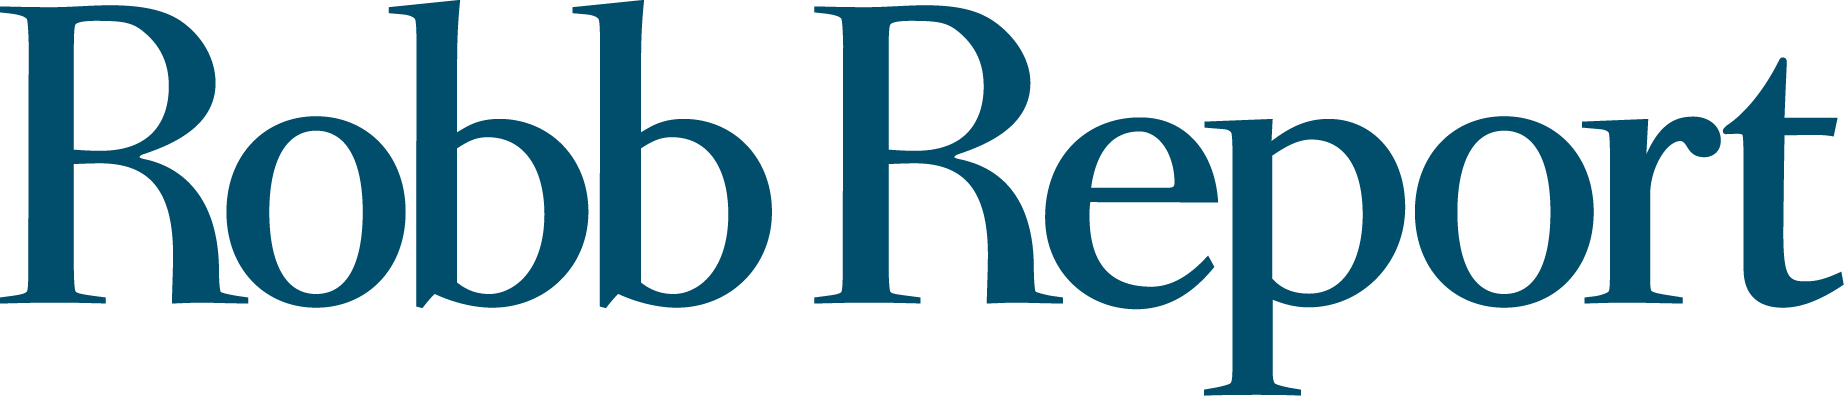 logo for Robb report